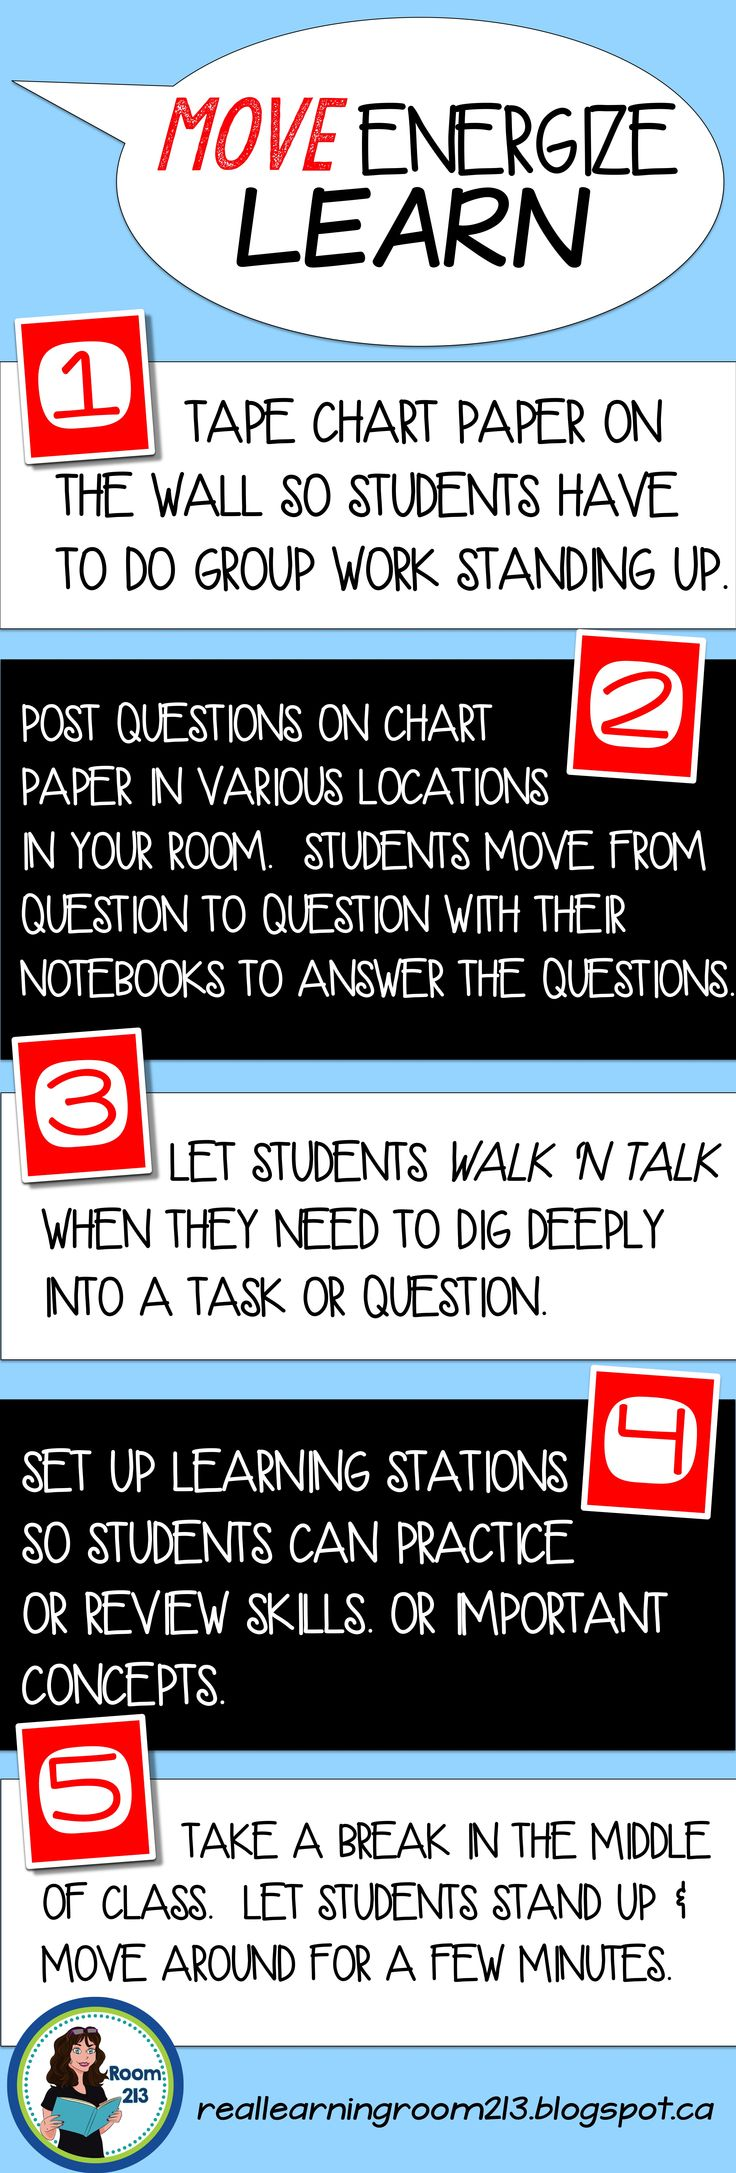 Moving to learn! Easy tips from Room 213.